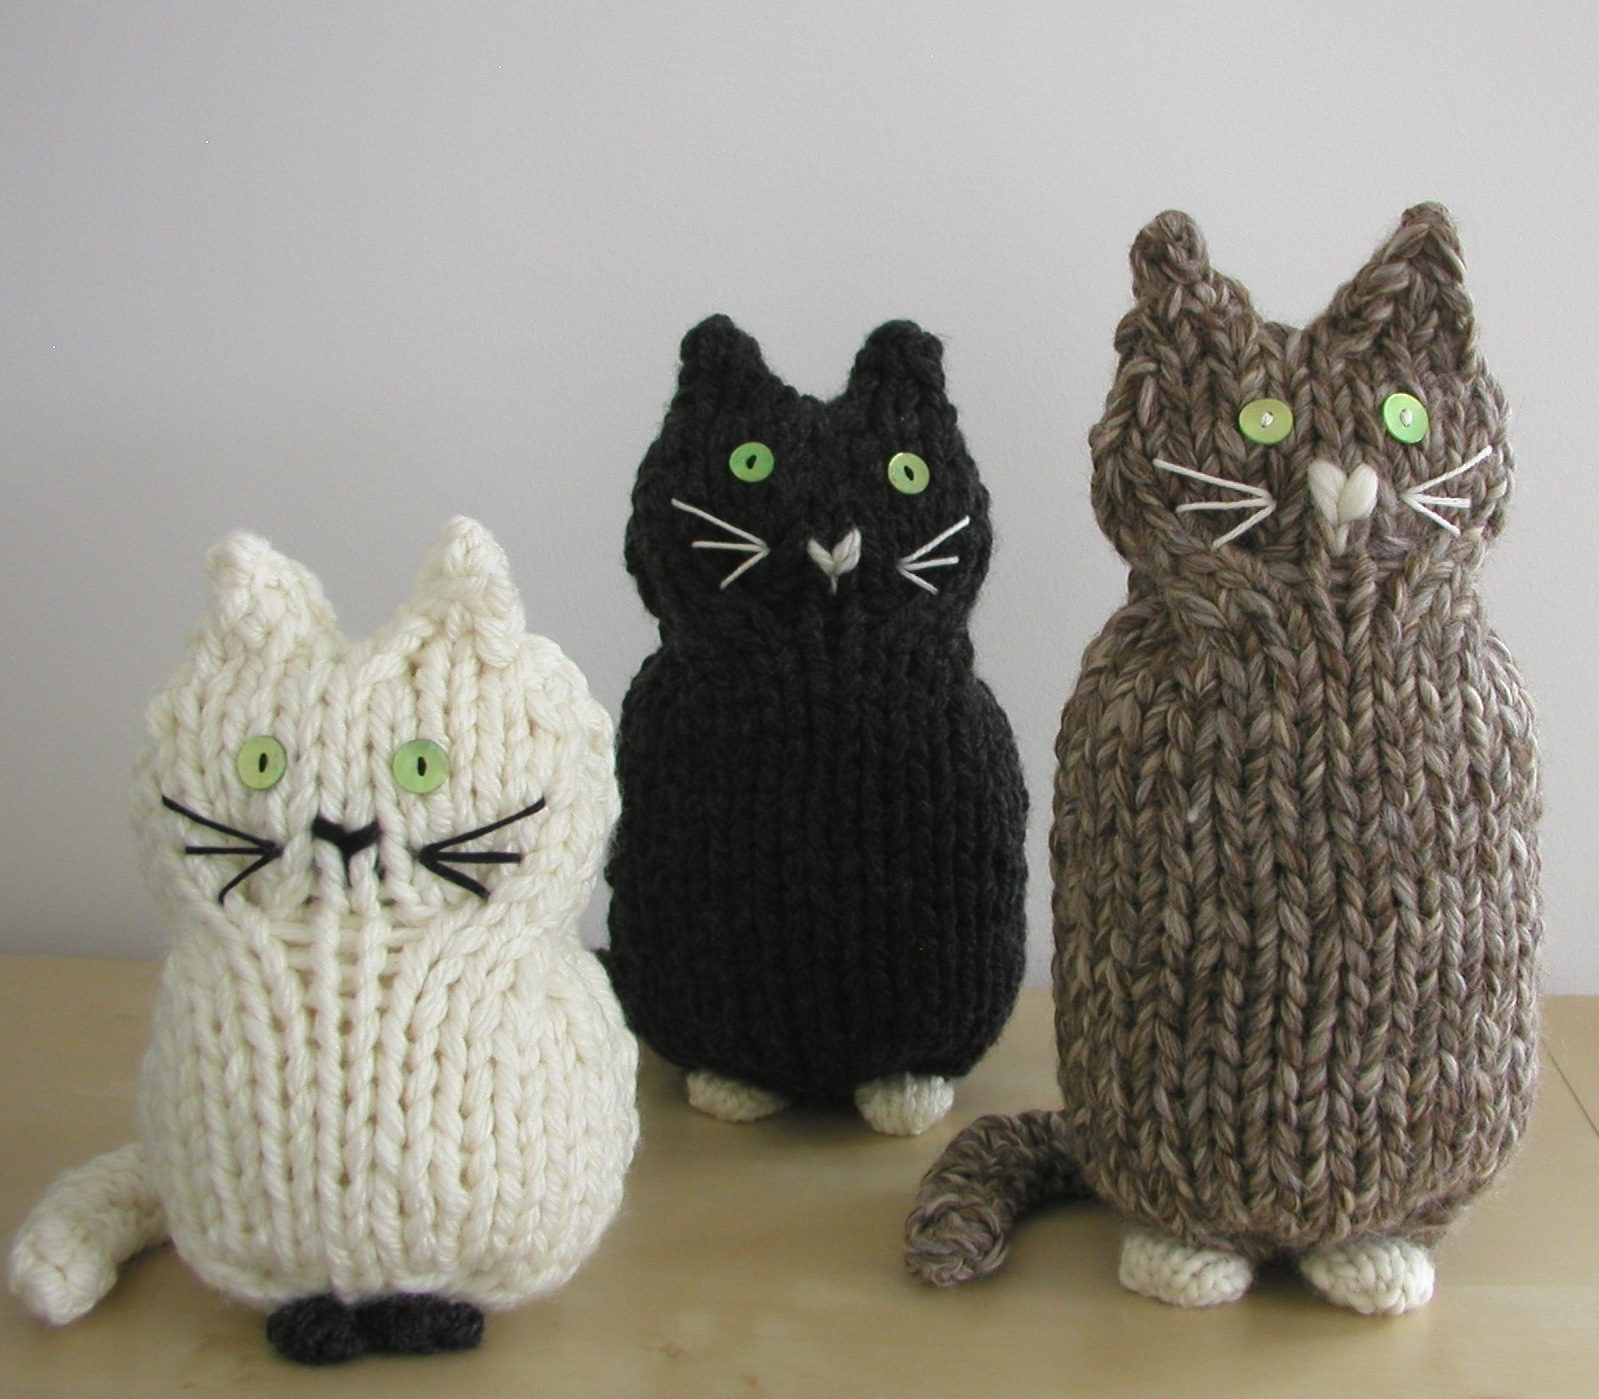 Cat Design Knitting Pattern : Hand Knitted Things: Cats in Simply Knitting Magazine